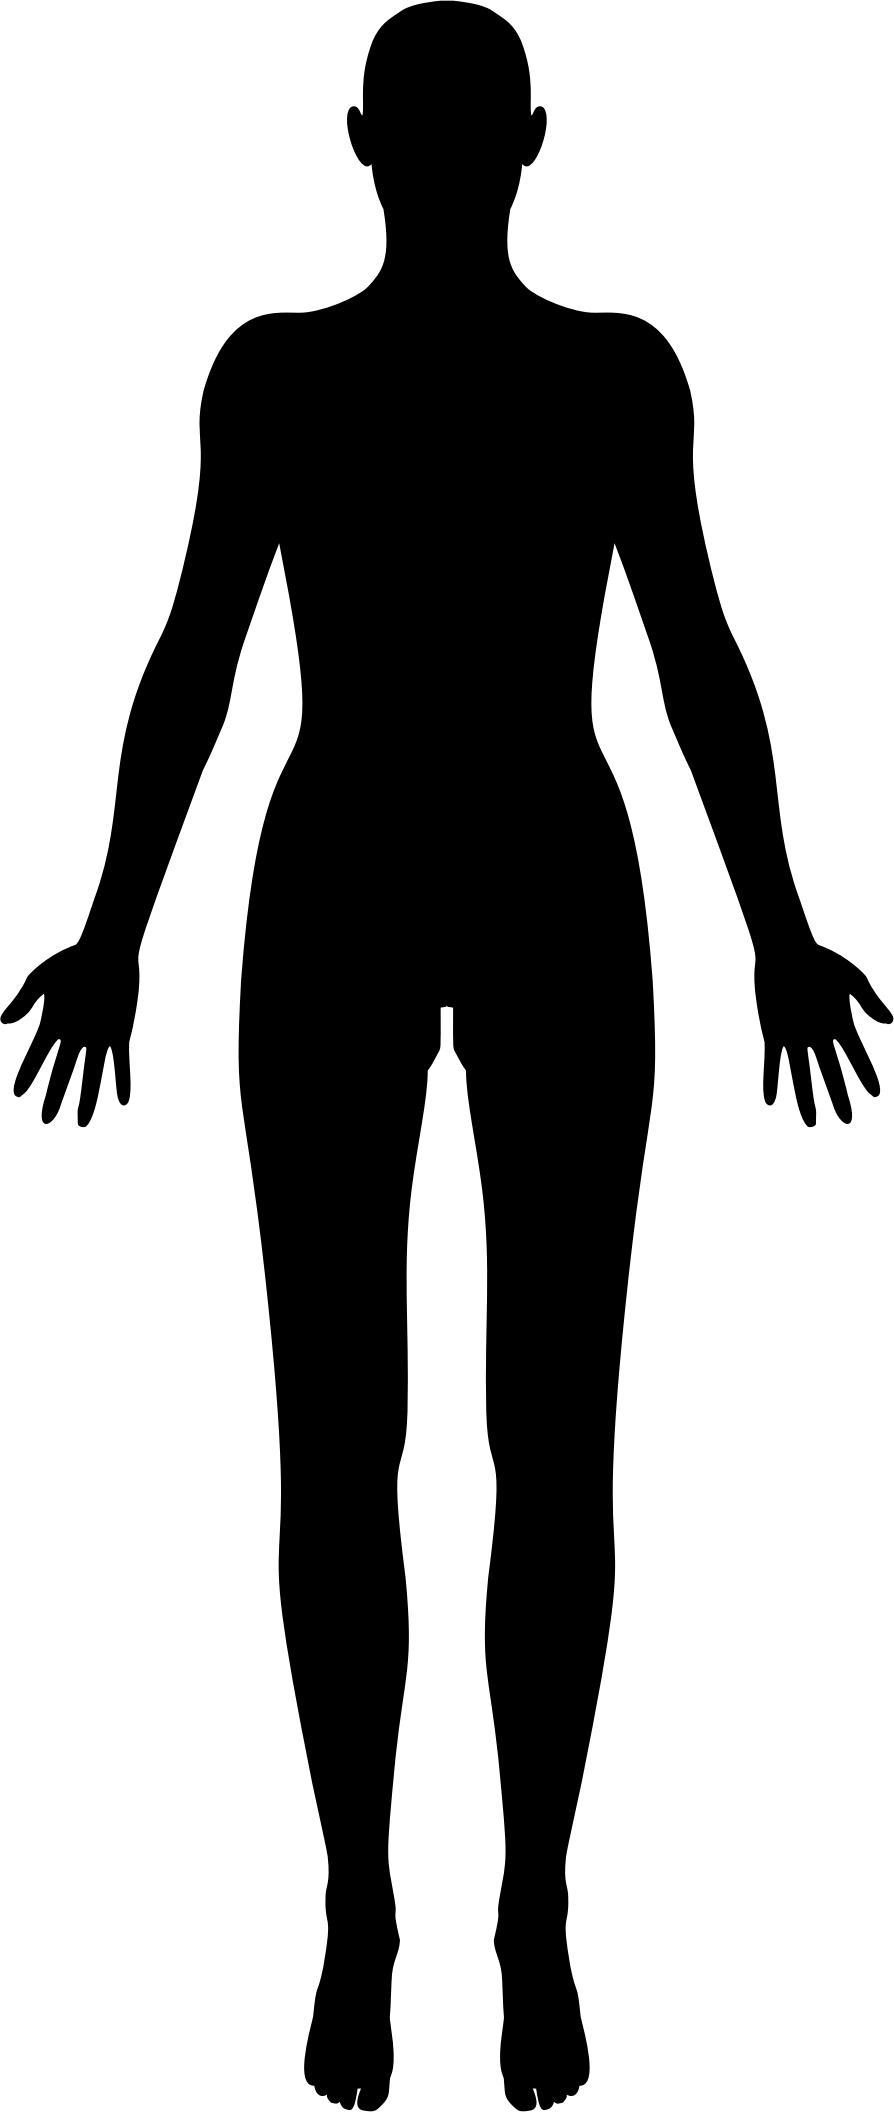 894x2112 Free Body Icons Png, Body Images